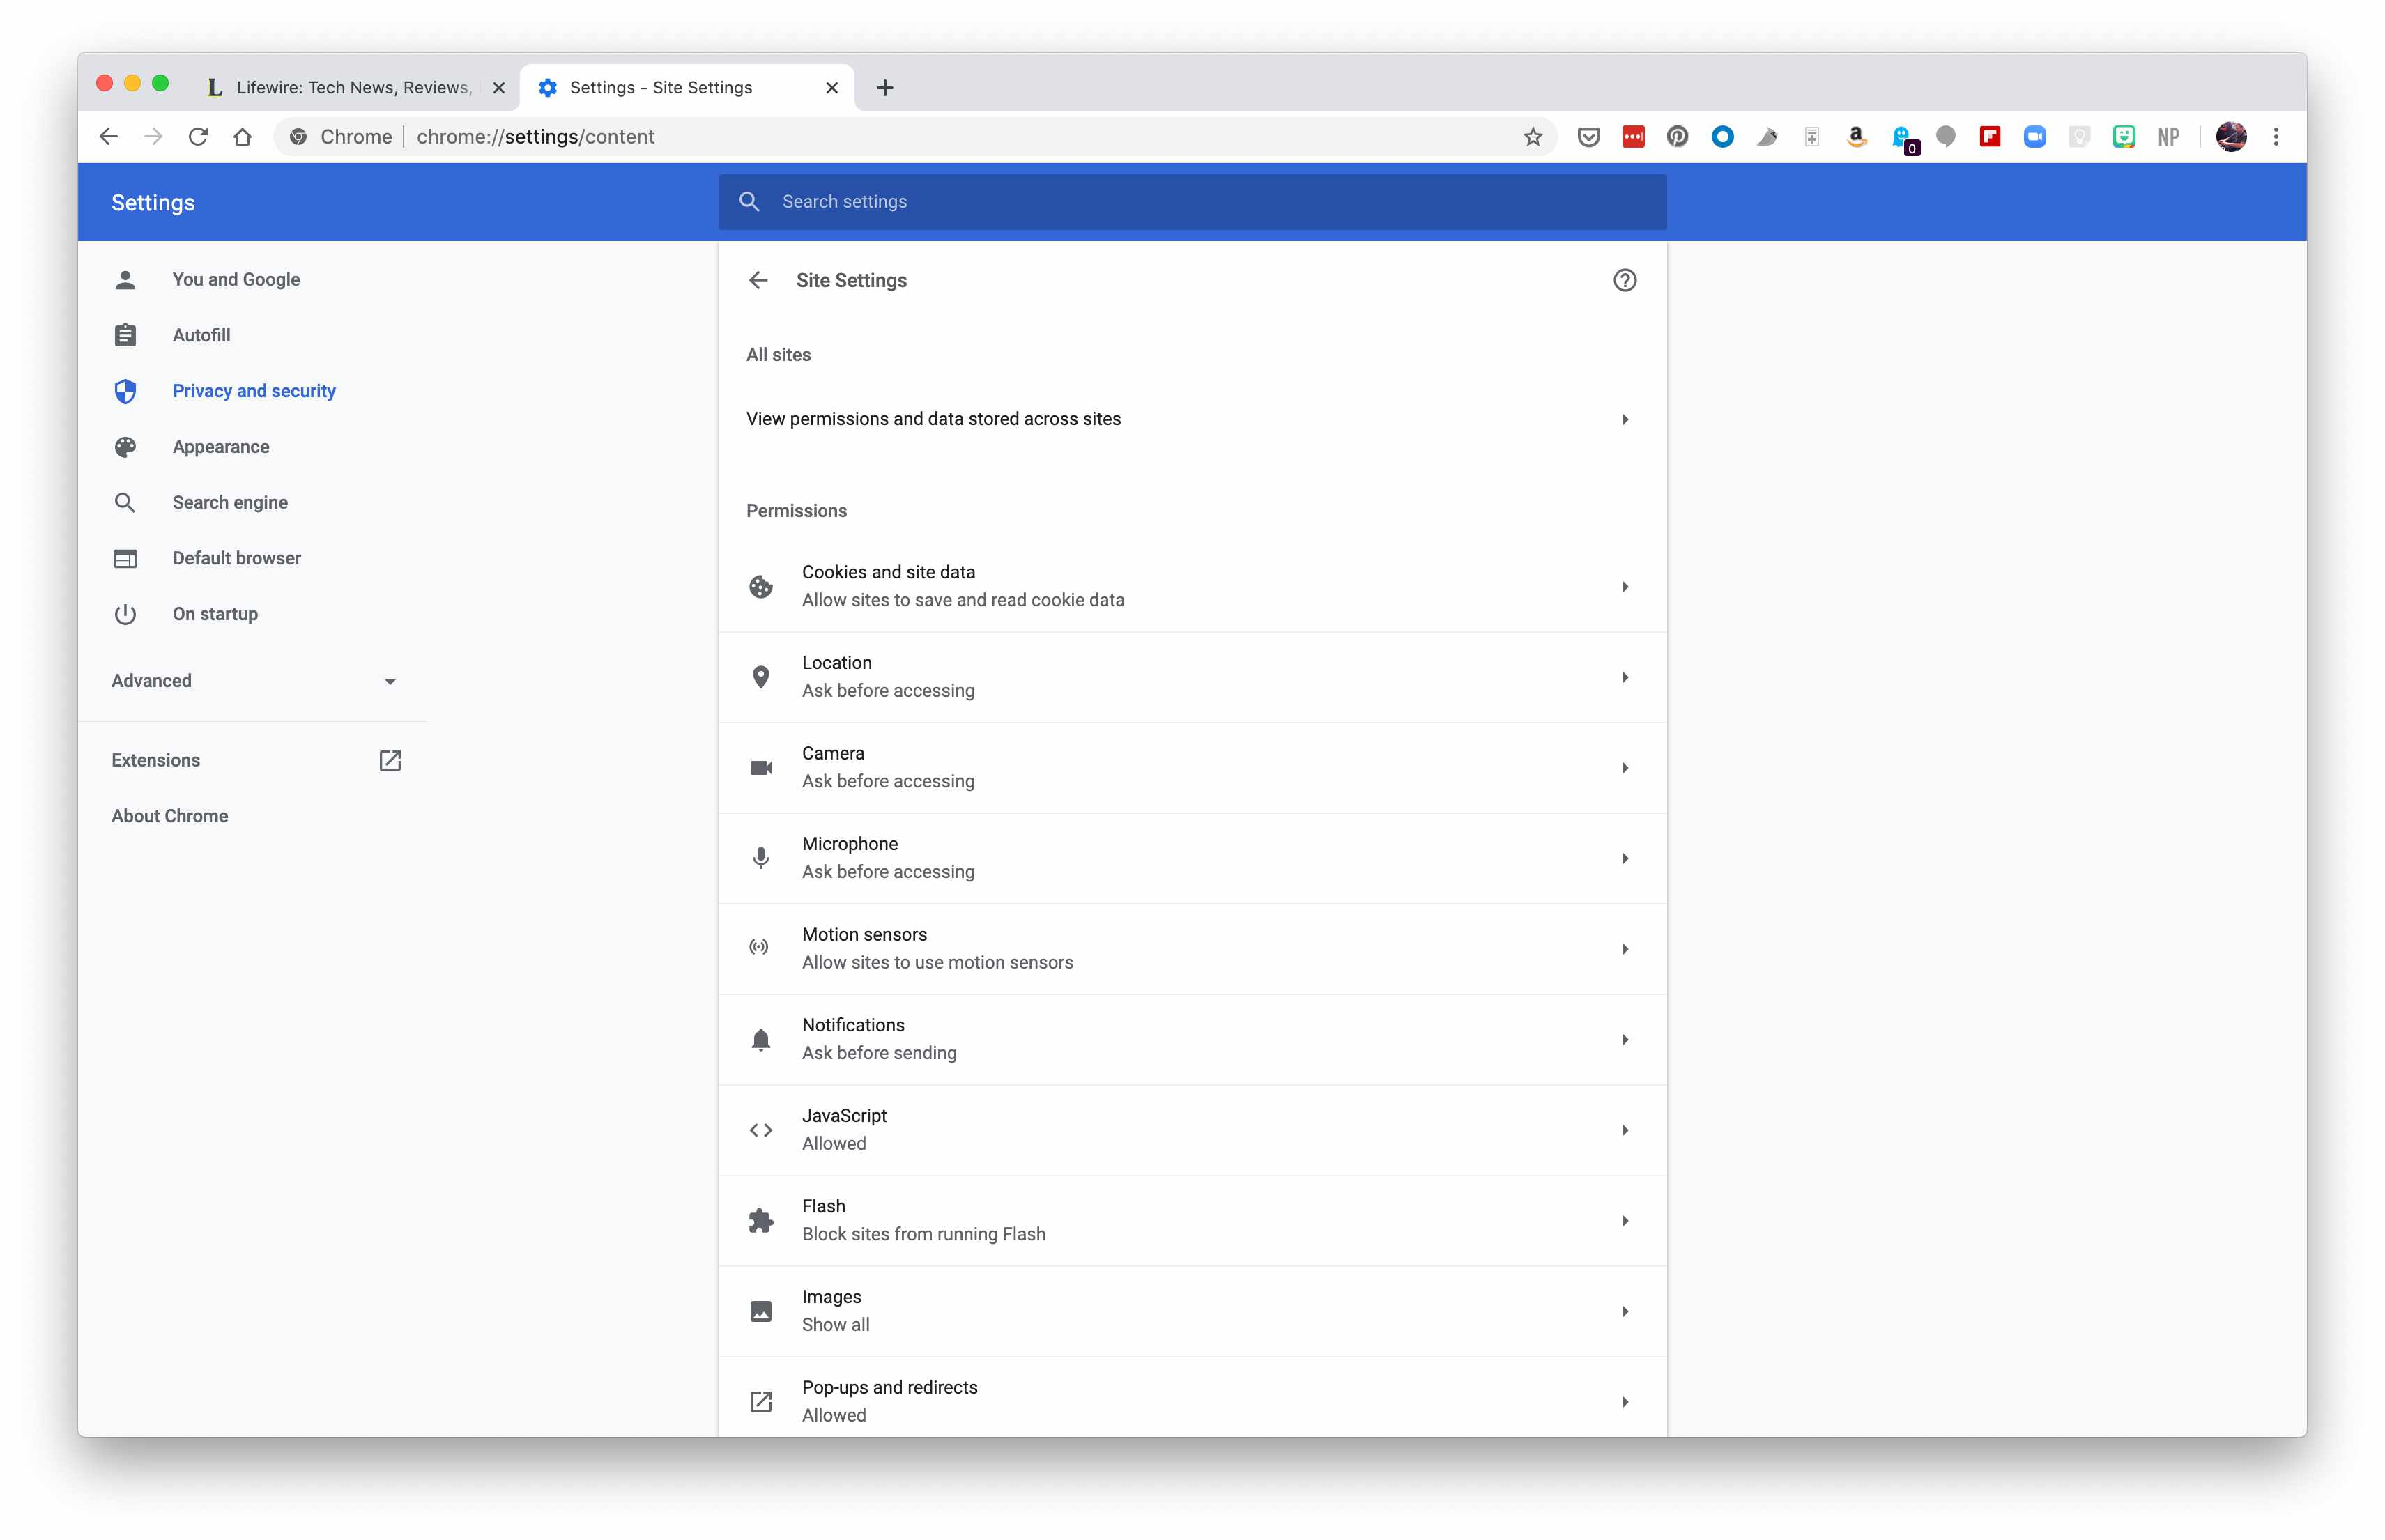 Chrome browser site settings.